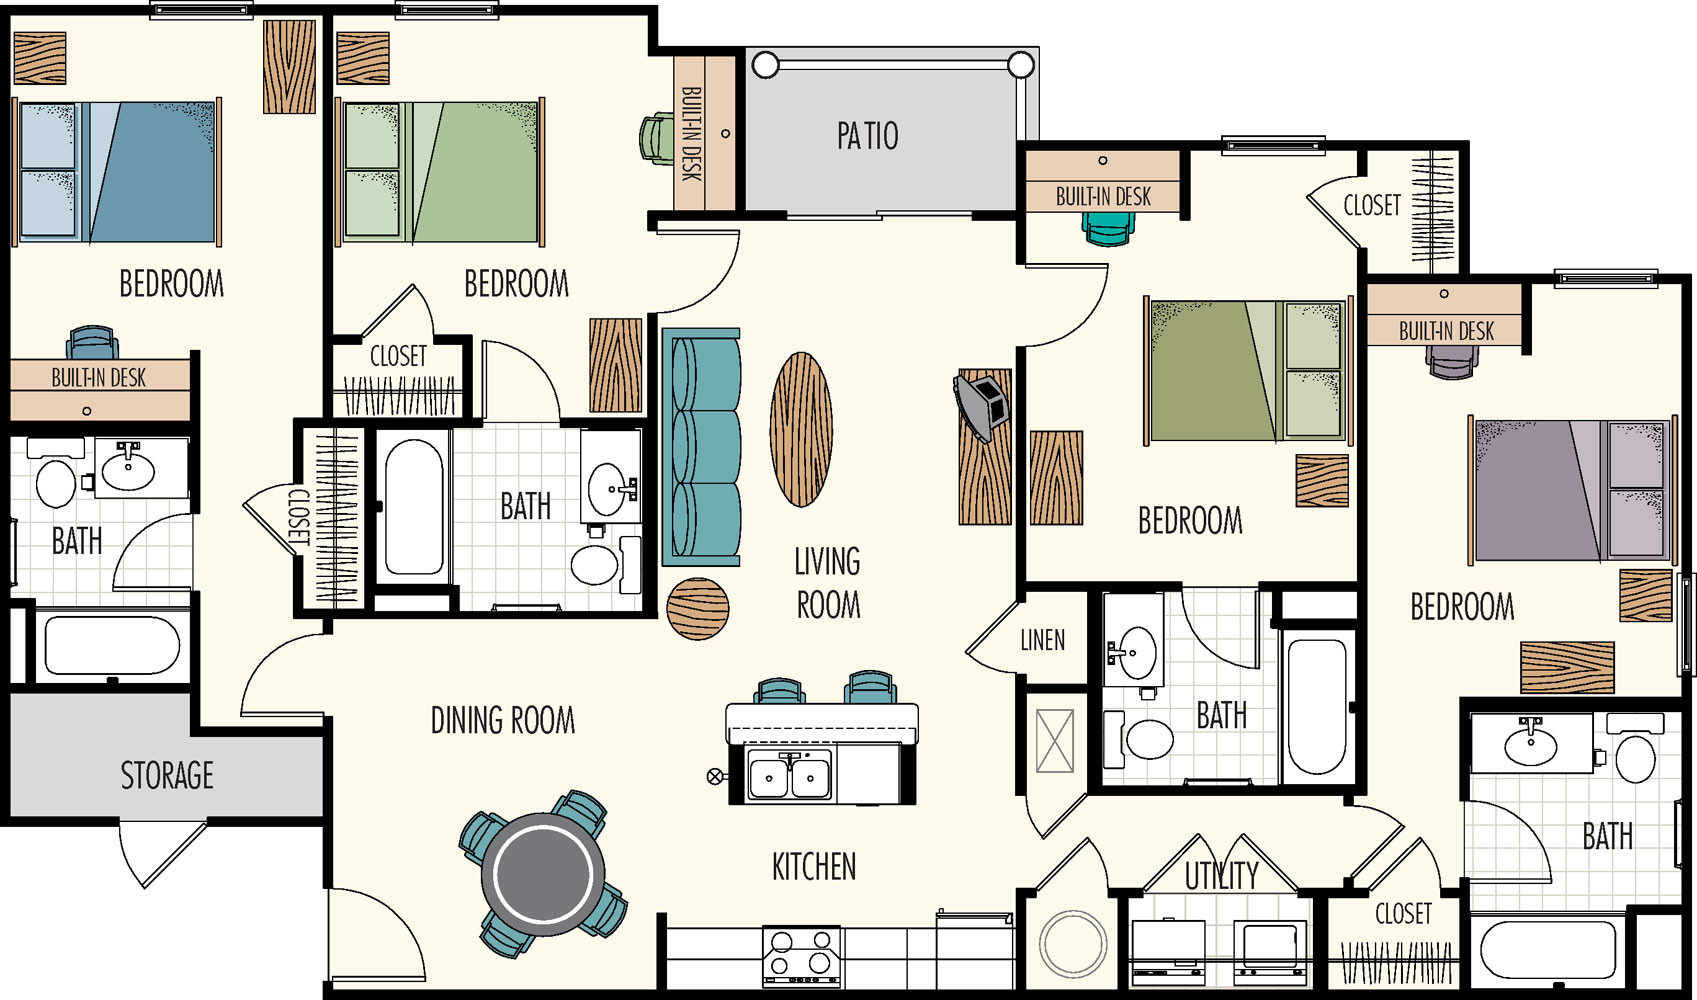 Best ideas about Bedroom Floor Plan . Save or Pin Floor Plans Hasbrouck ManagementHasbrouck Management Now.